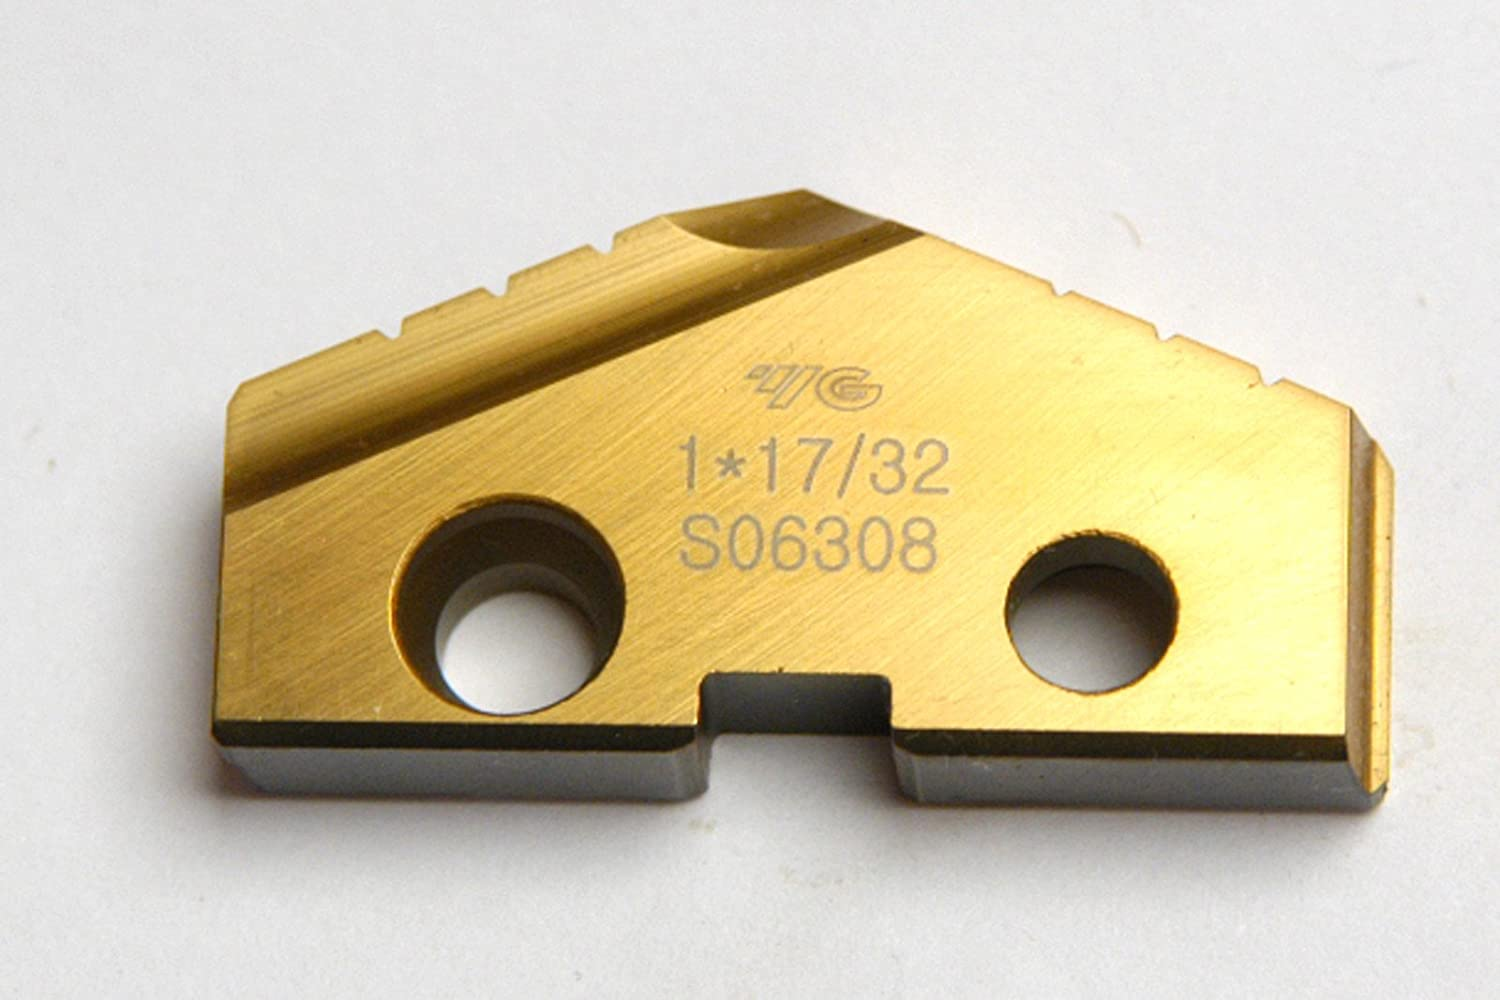 Limited Special Price 1-17 32 1.5312 DIAMETER T-15 SPADE DRILL T National products SERIES INSERT 3TA